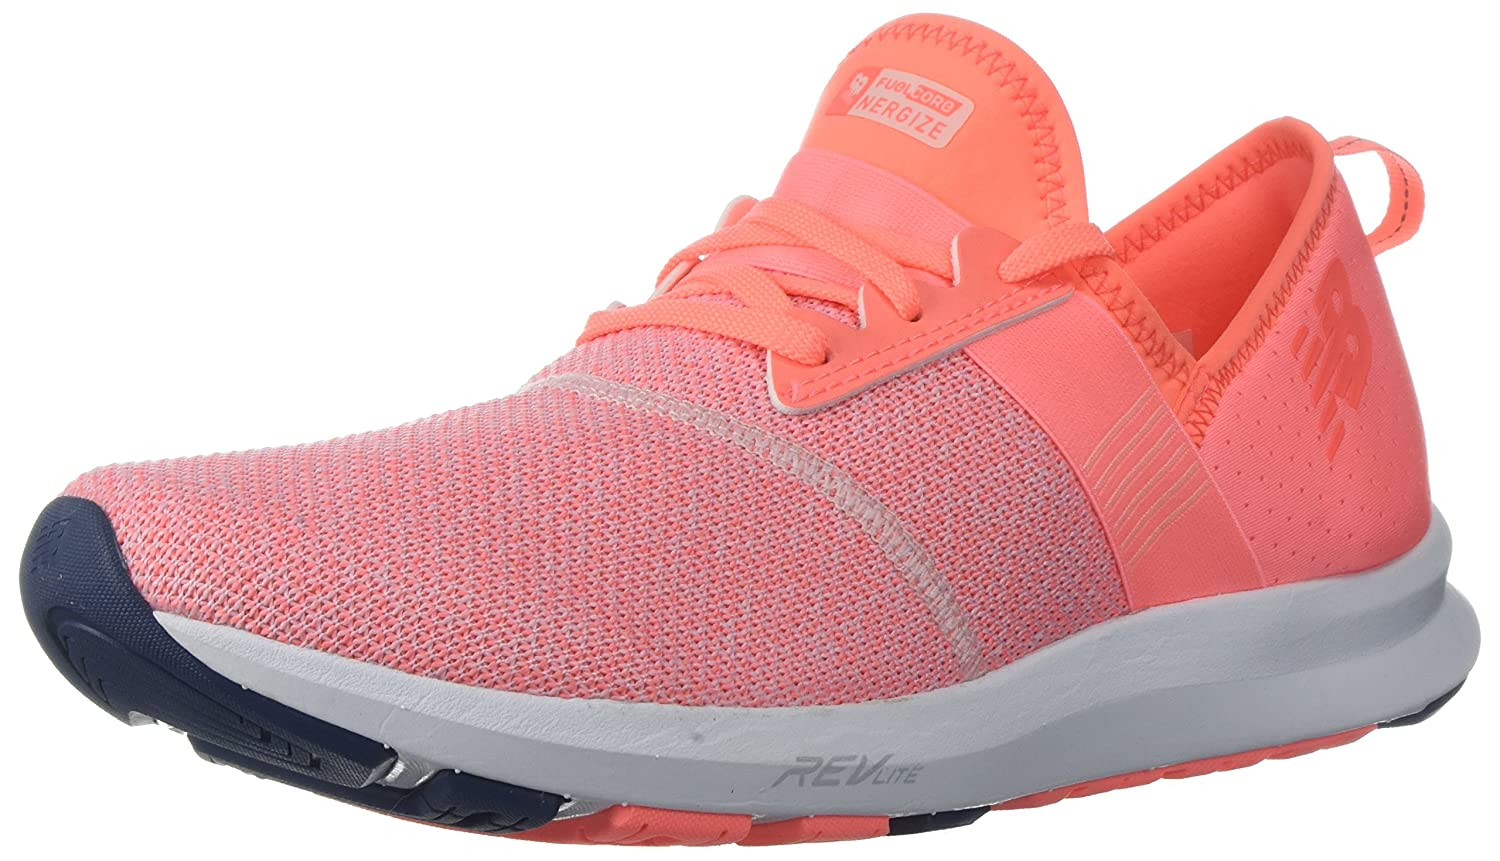 New Balance Women's FuelCore Nergize V1 Fuel Core Cross Trainer B06XS3M83Z 85 D US|Fiji/White